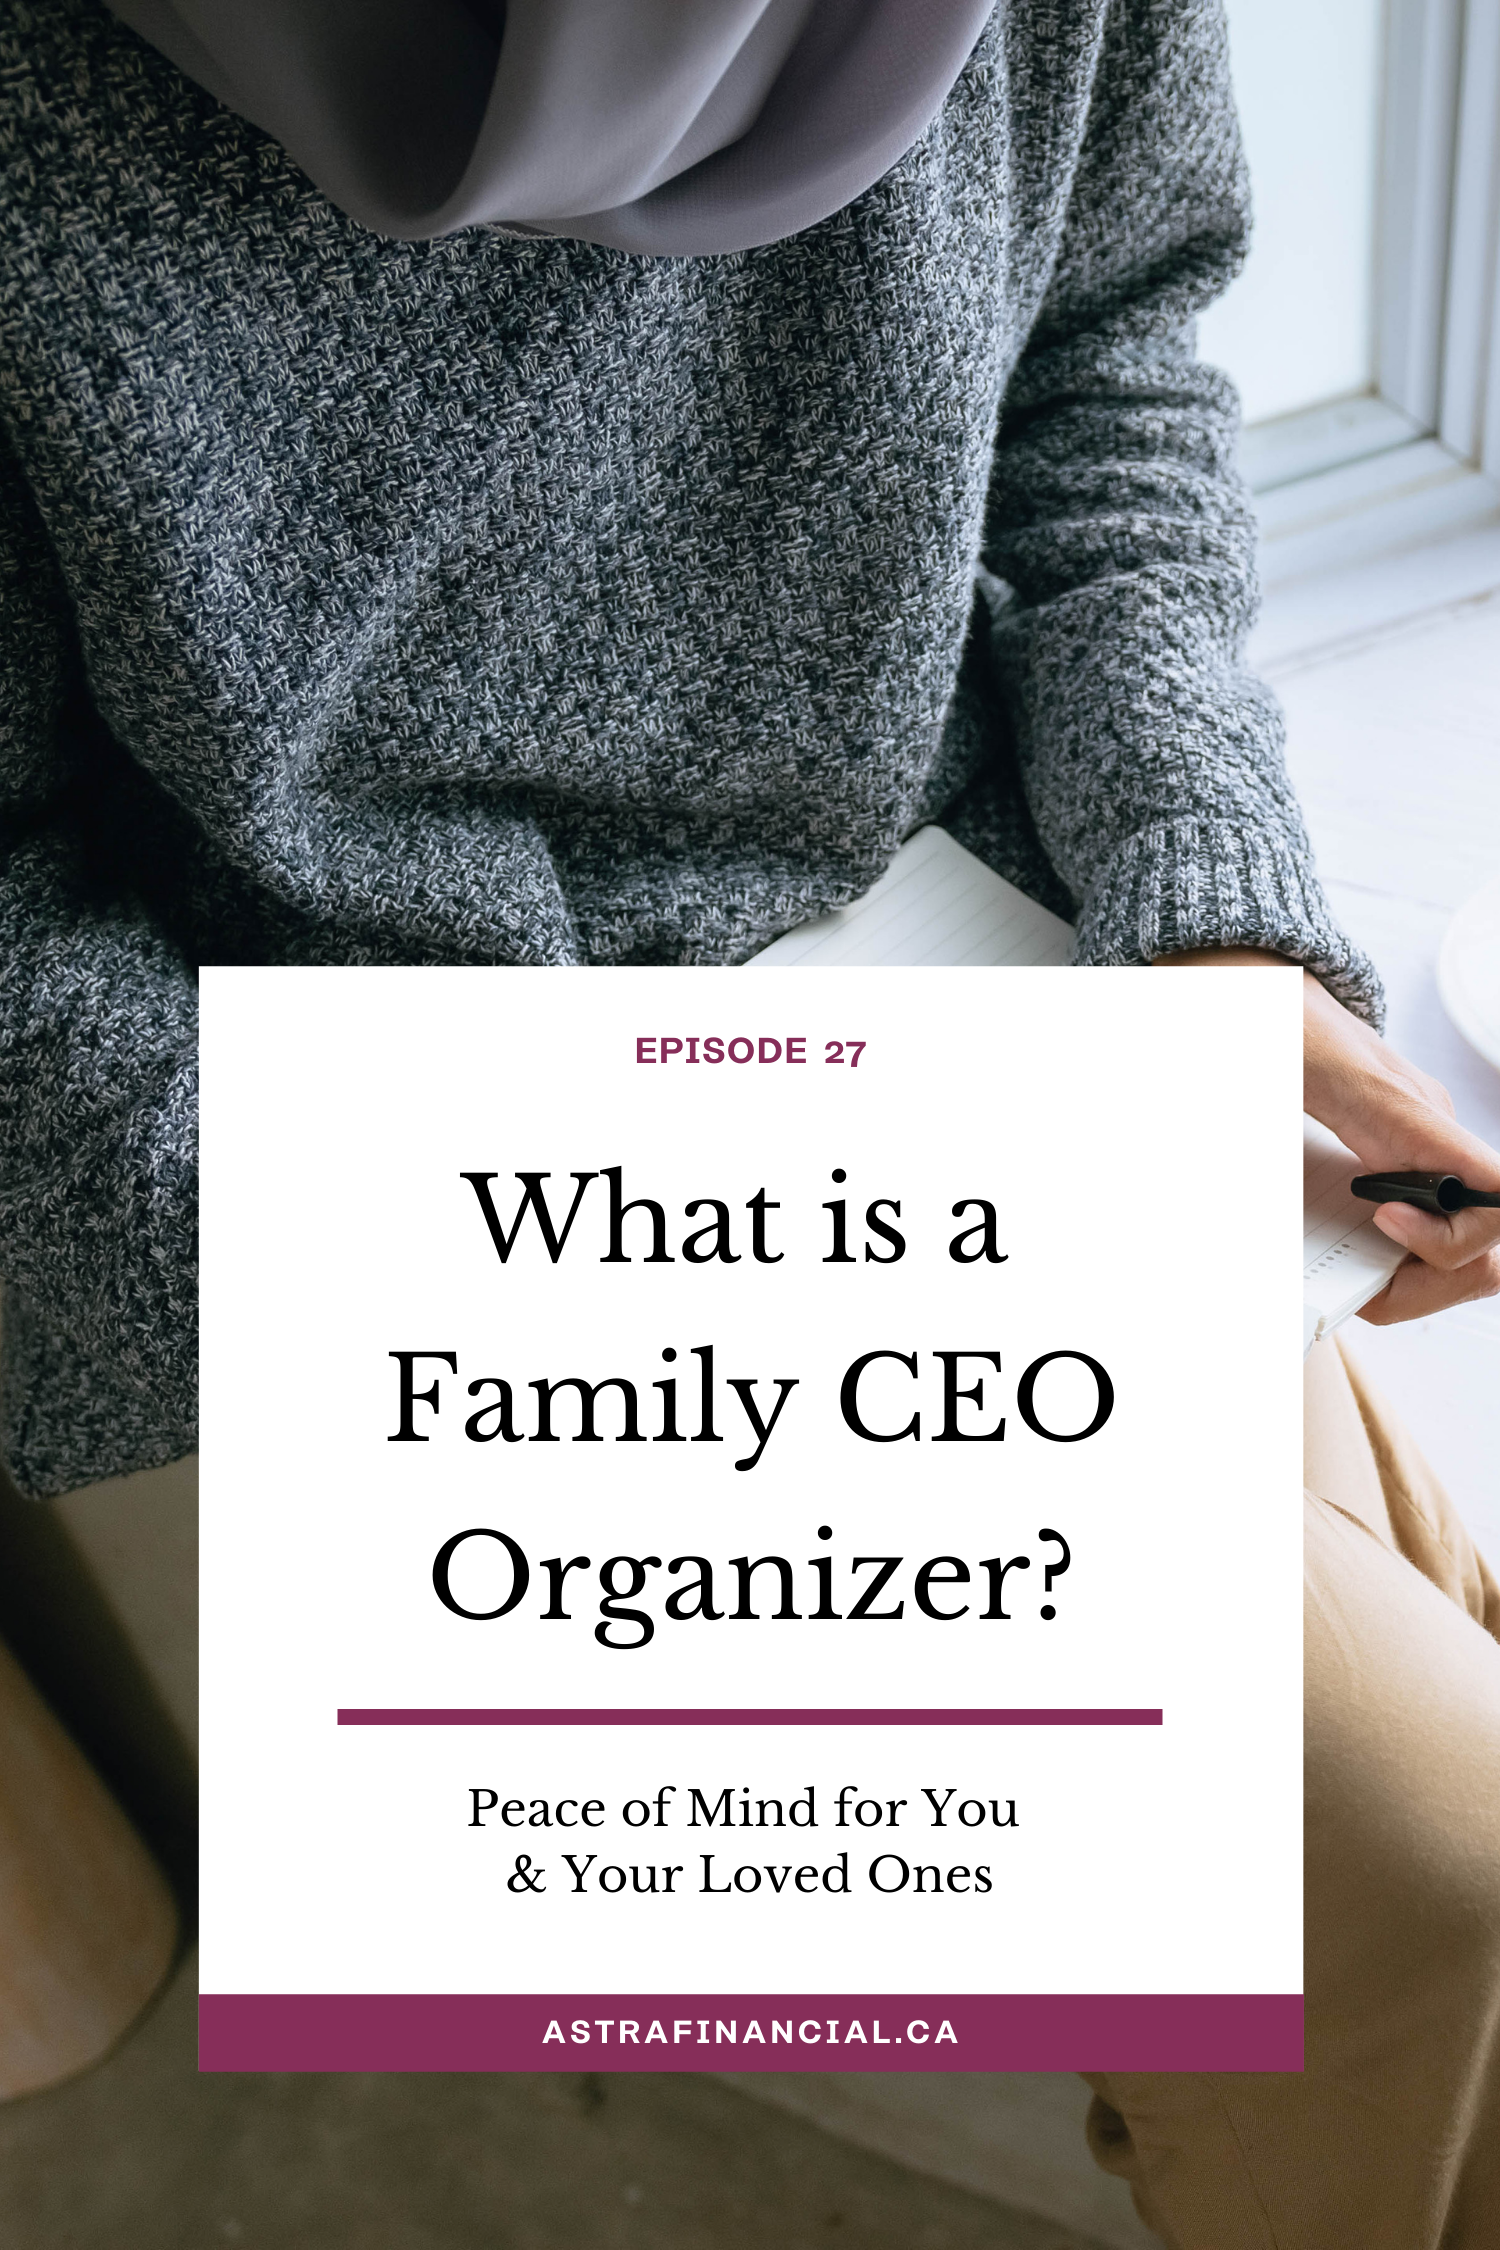 What is a Family CEO Organizer? by Astra Financial